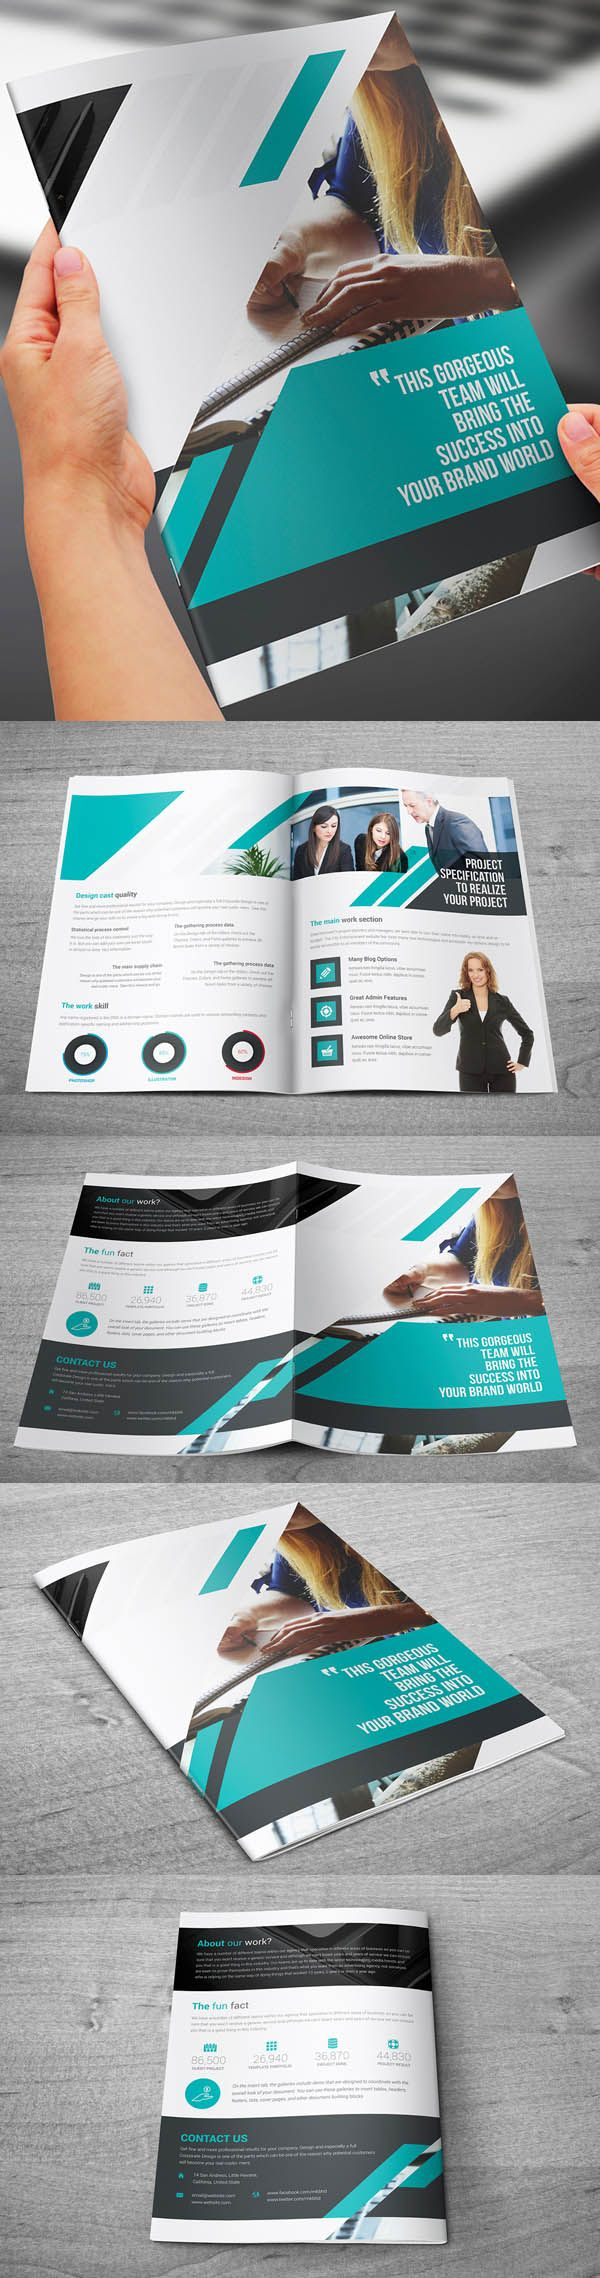 Bi-Fold A4 Corporate Brochure Template                                                                                                                                                      Más